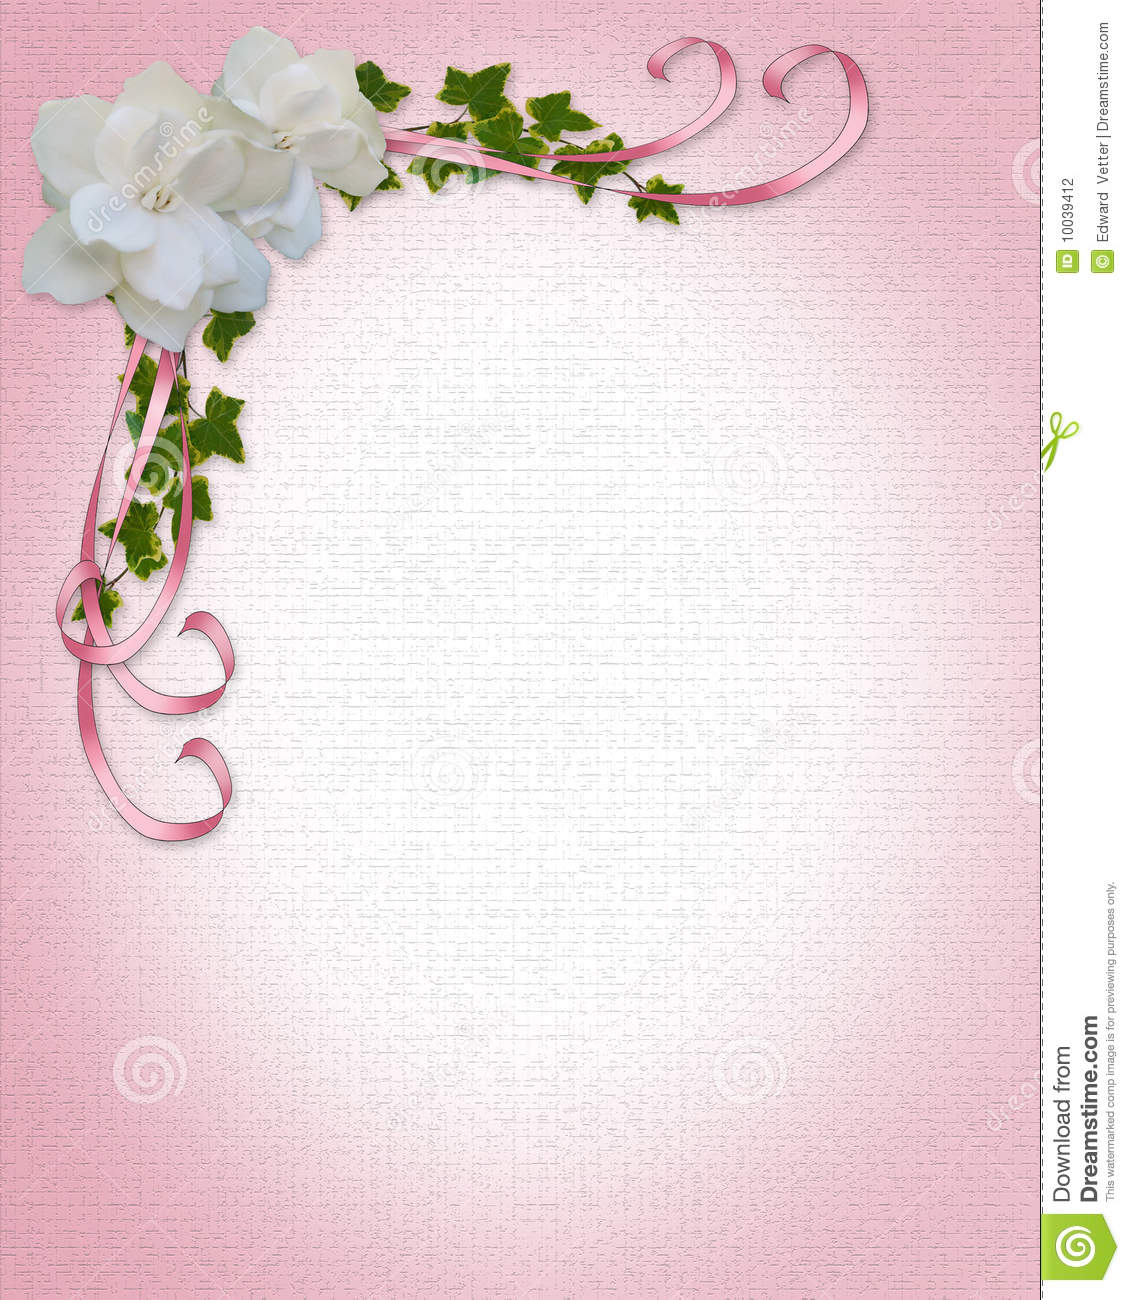 border designs for birthday invitations ; wedding-invitation-border-gardenias-10039412